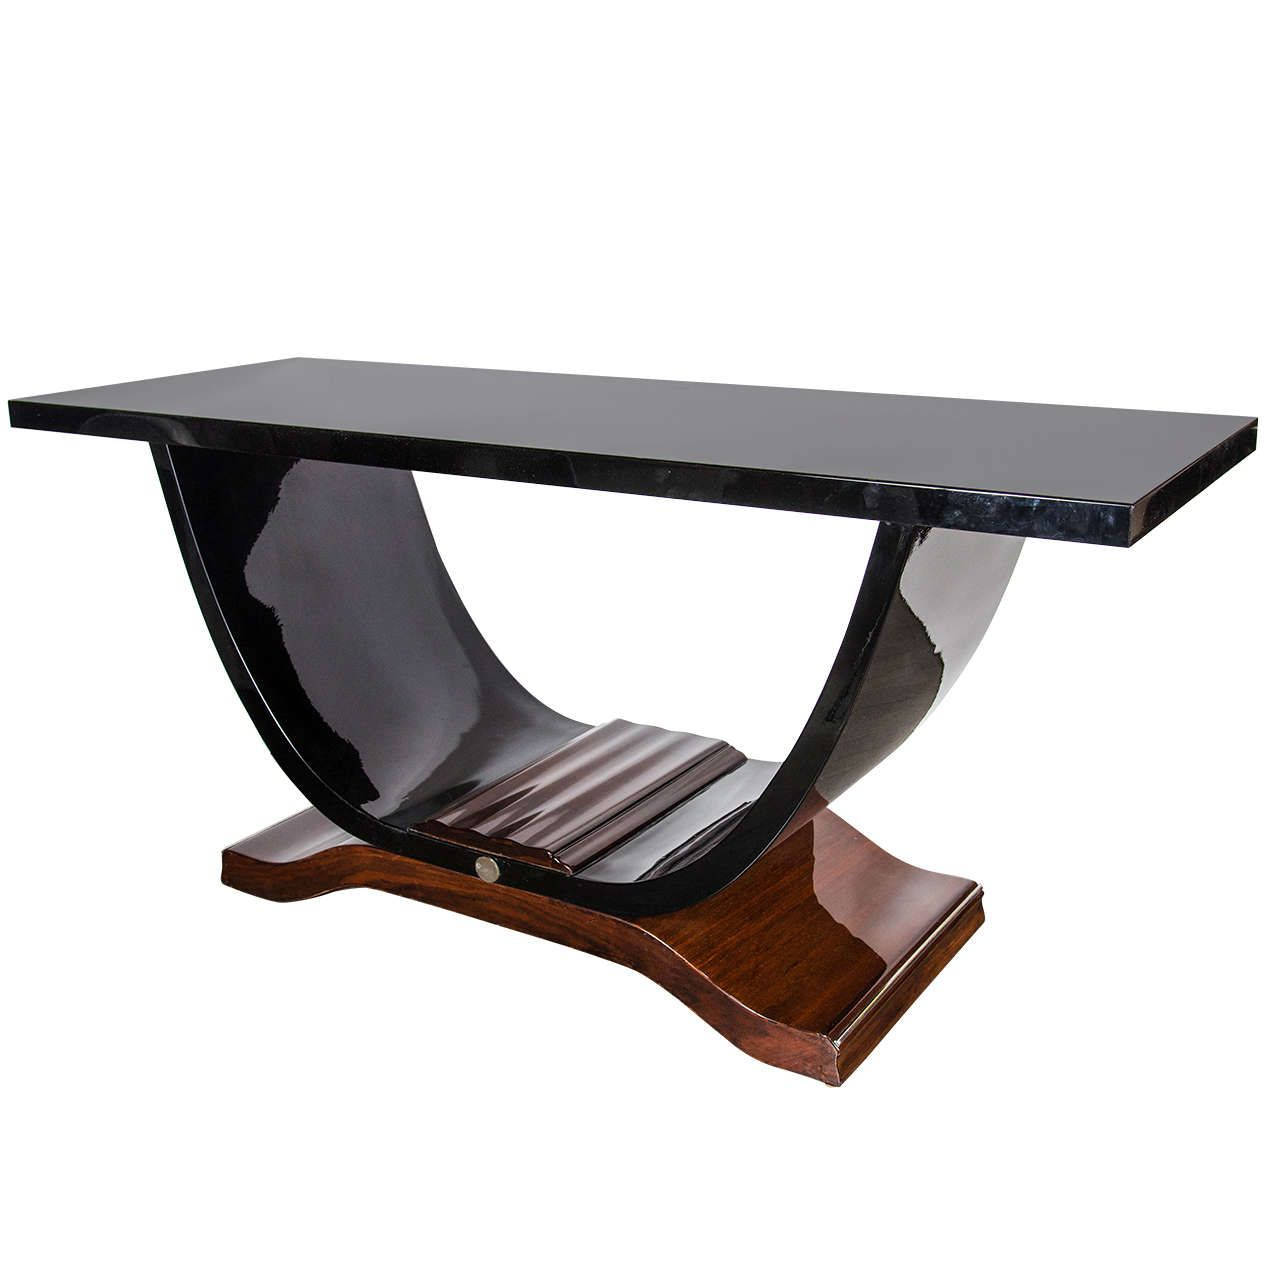 Art deco console table in the manner of ruhlmann in black lacquer art deco console table in the manner of ruhlmann in black lacquer and rosewood geotapseo Image collections